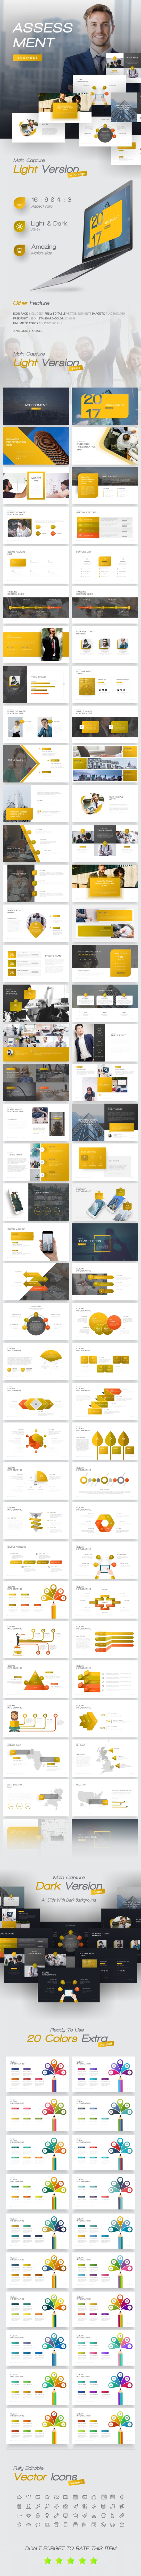 Assessment Business Template - Business PowerPoint Templates